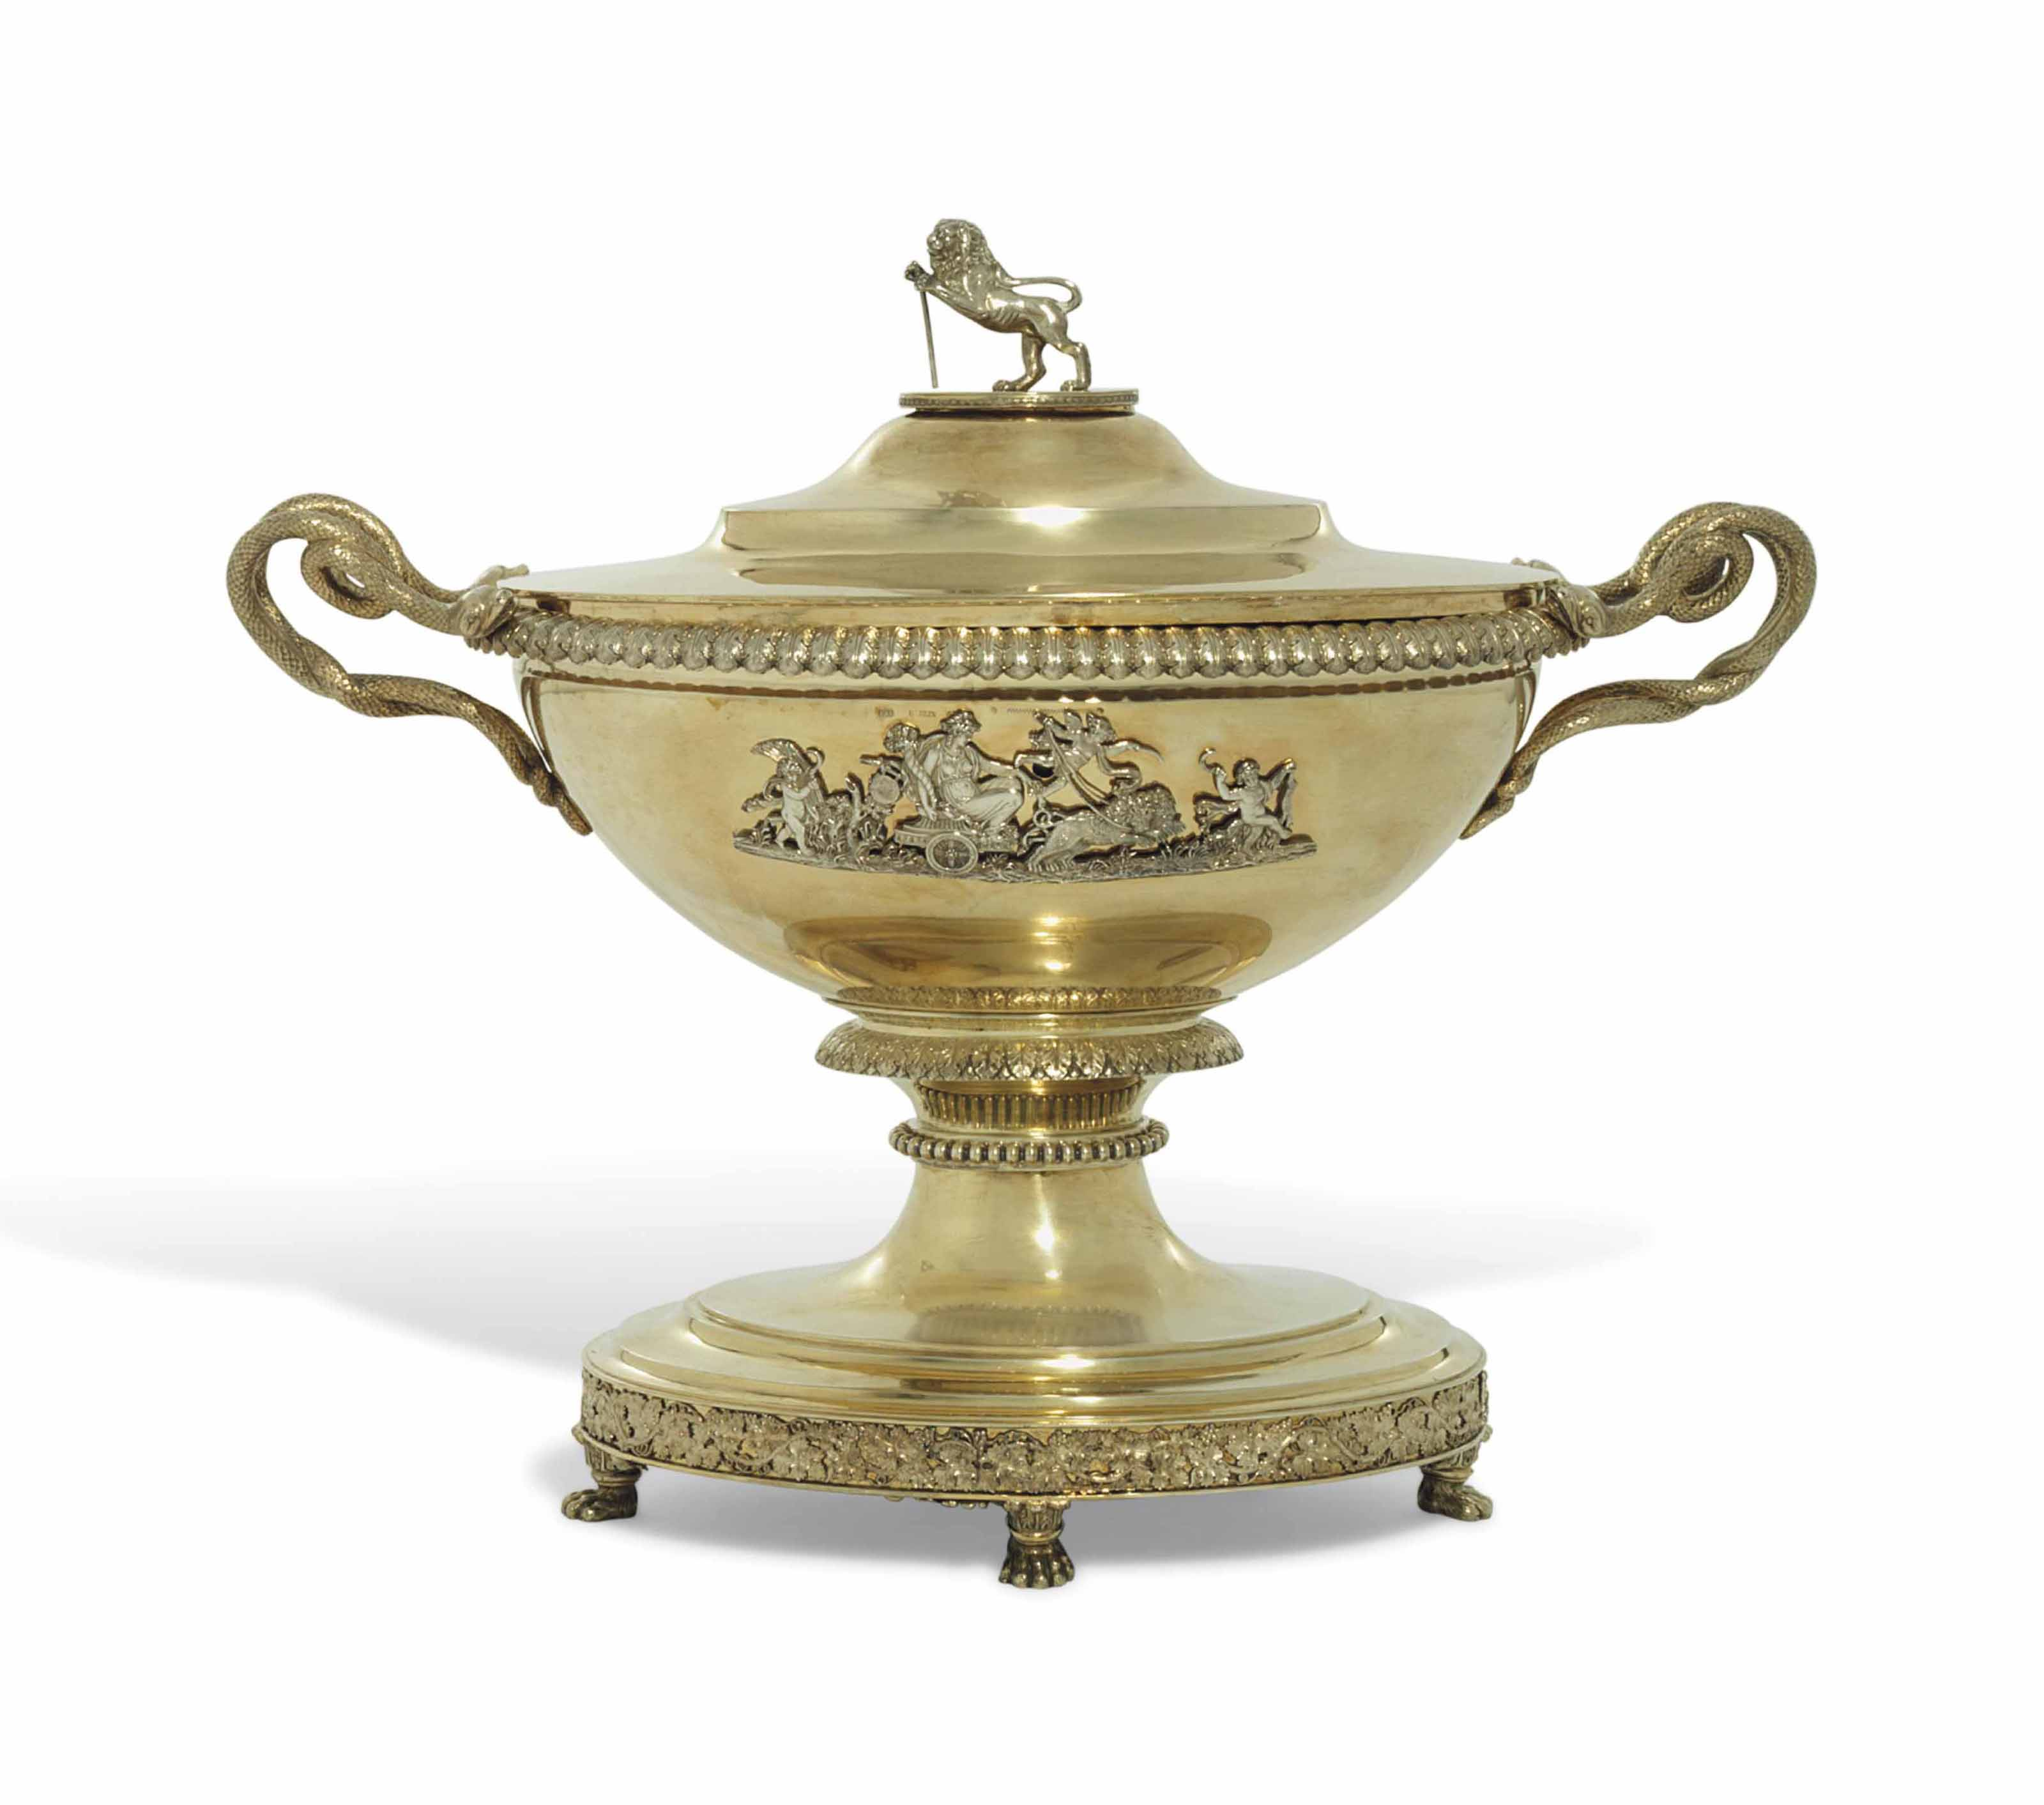 A GERMAN SILVER-GILT SOUP-TUREEN, COVER AND LINER